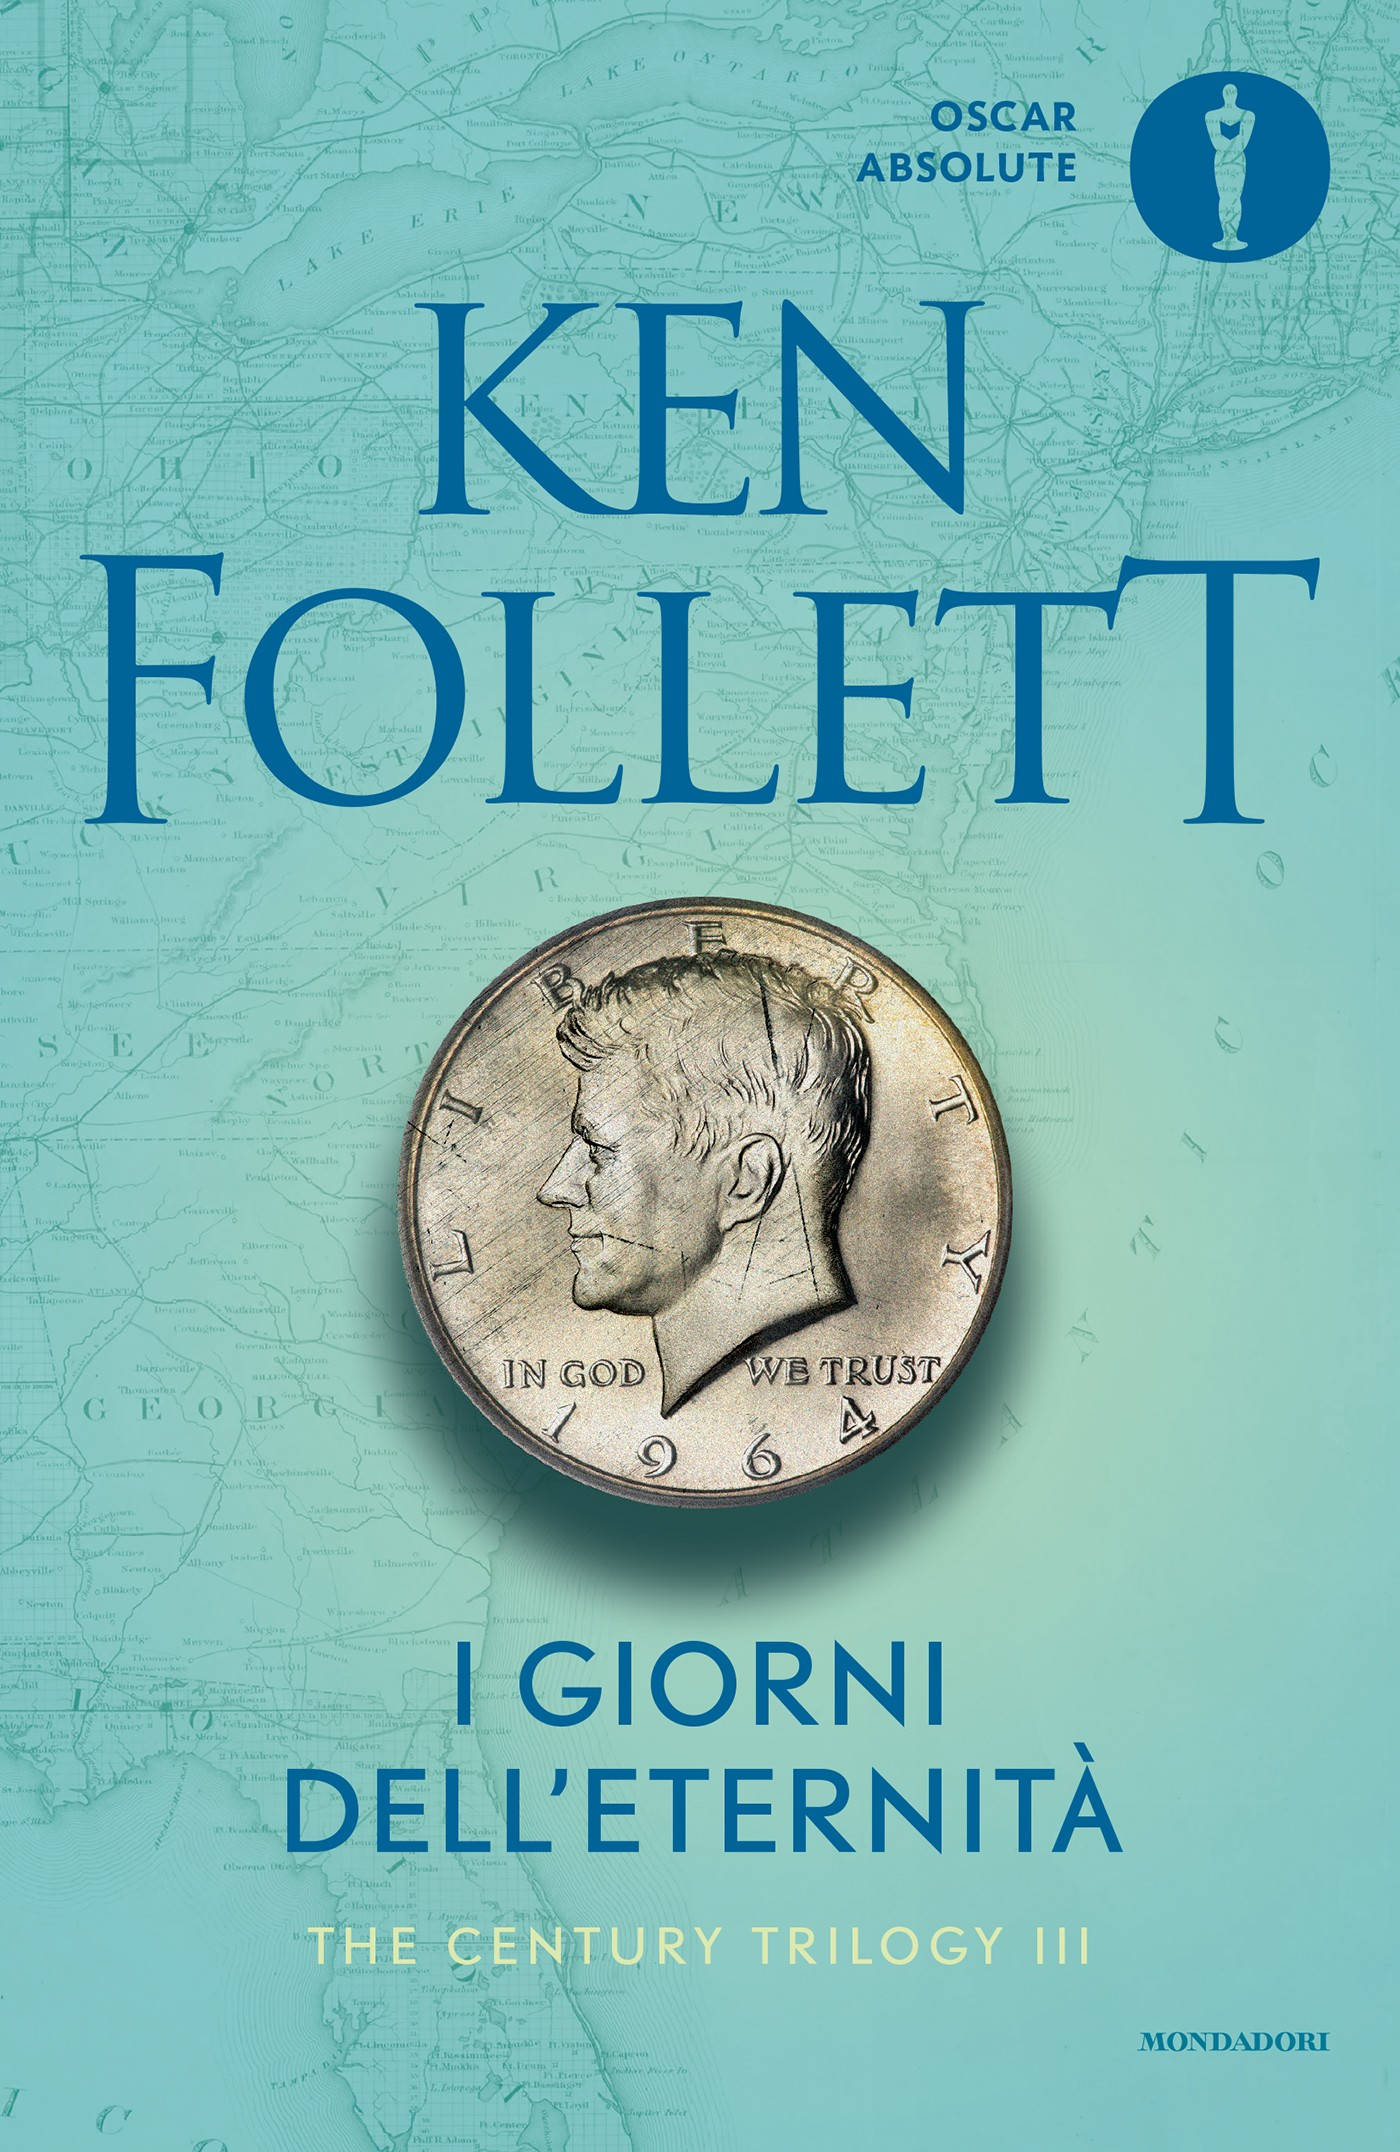 Follett senza epub fine mondo ken